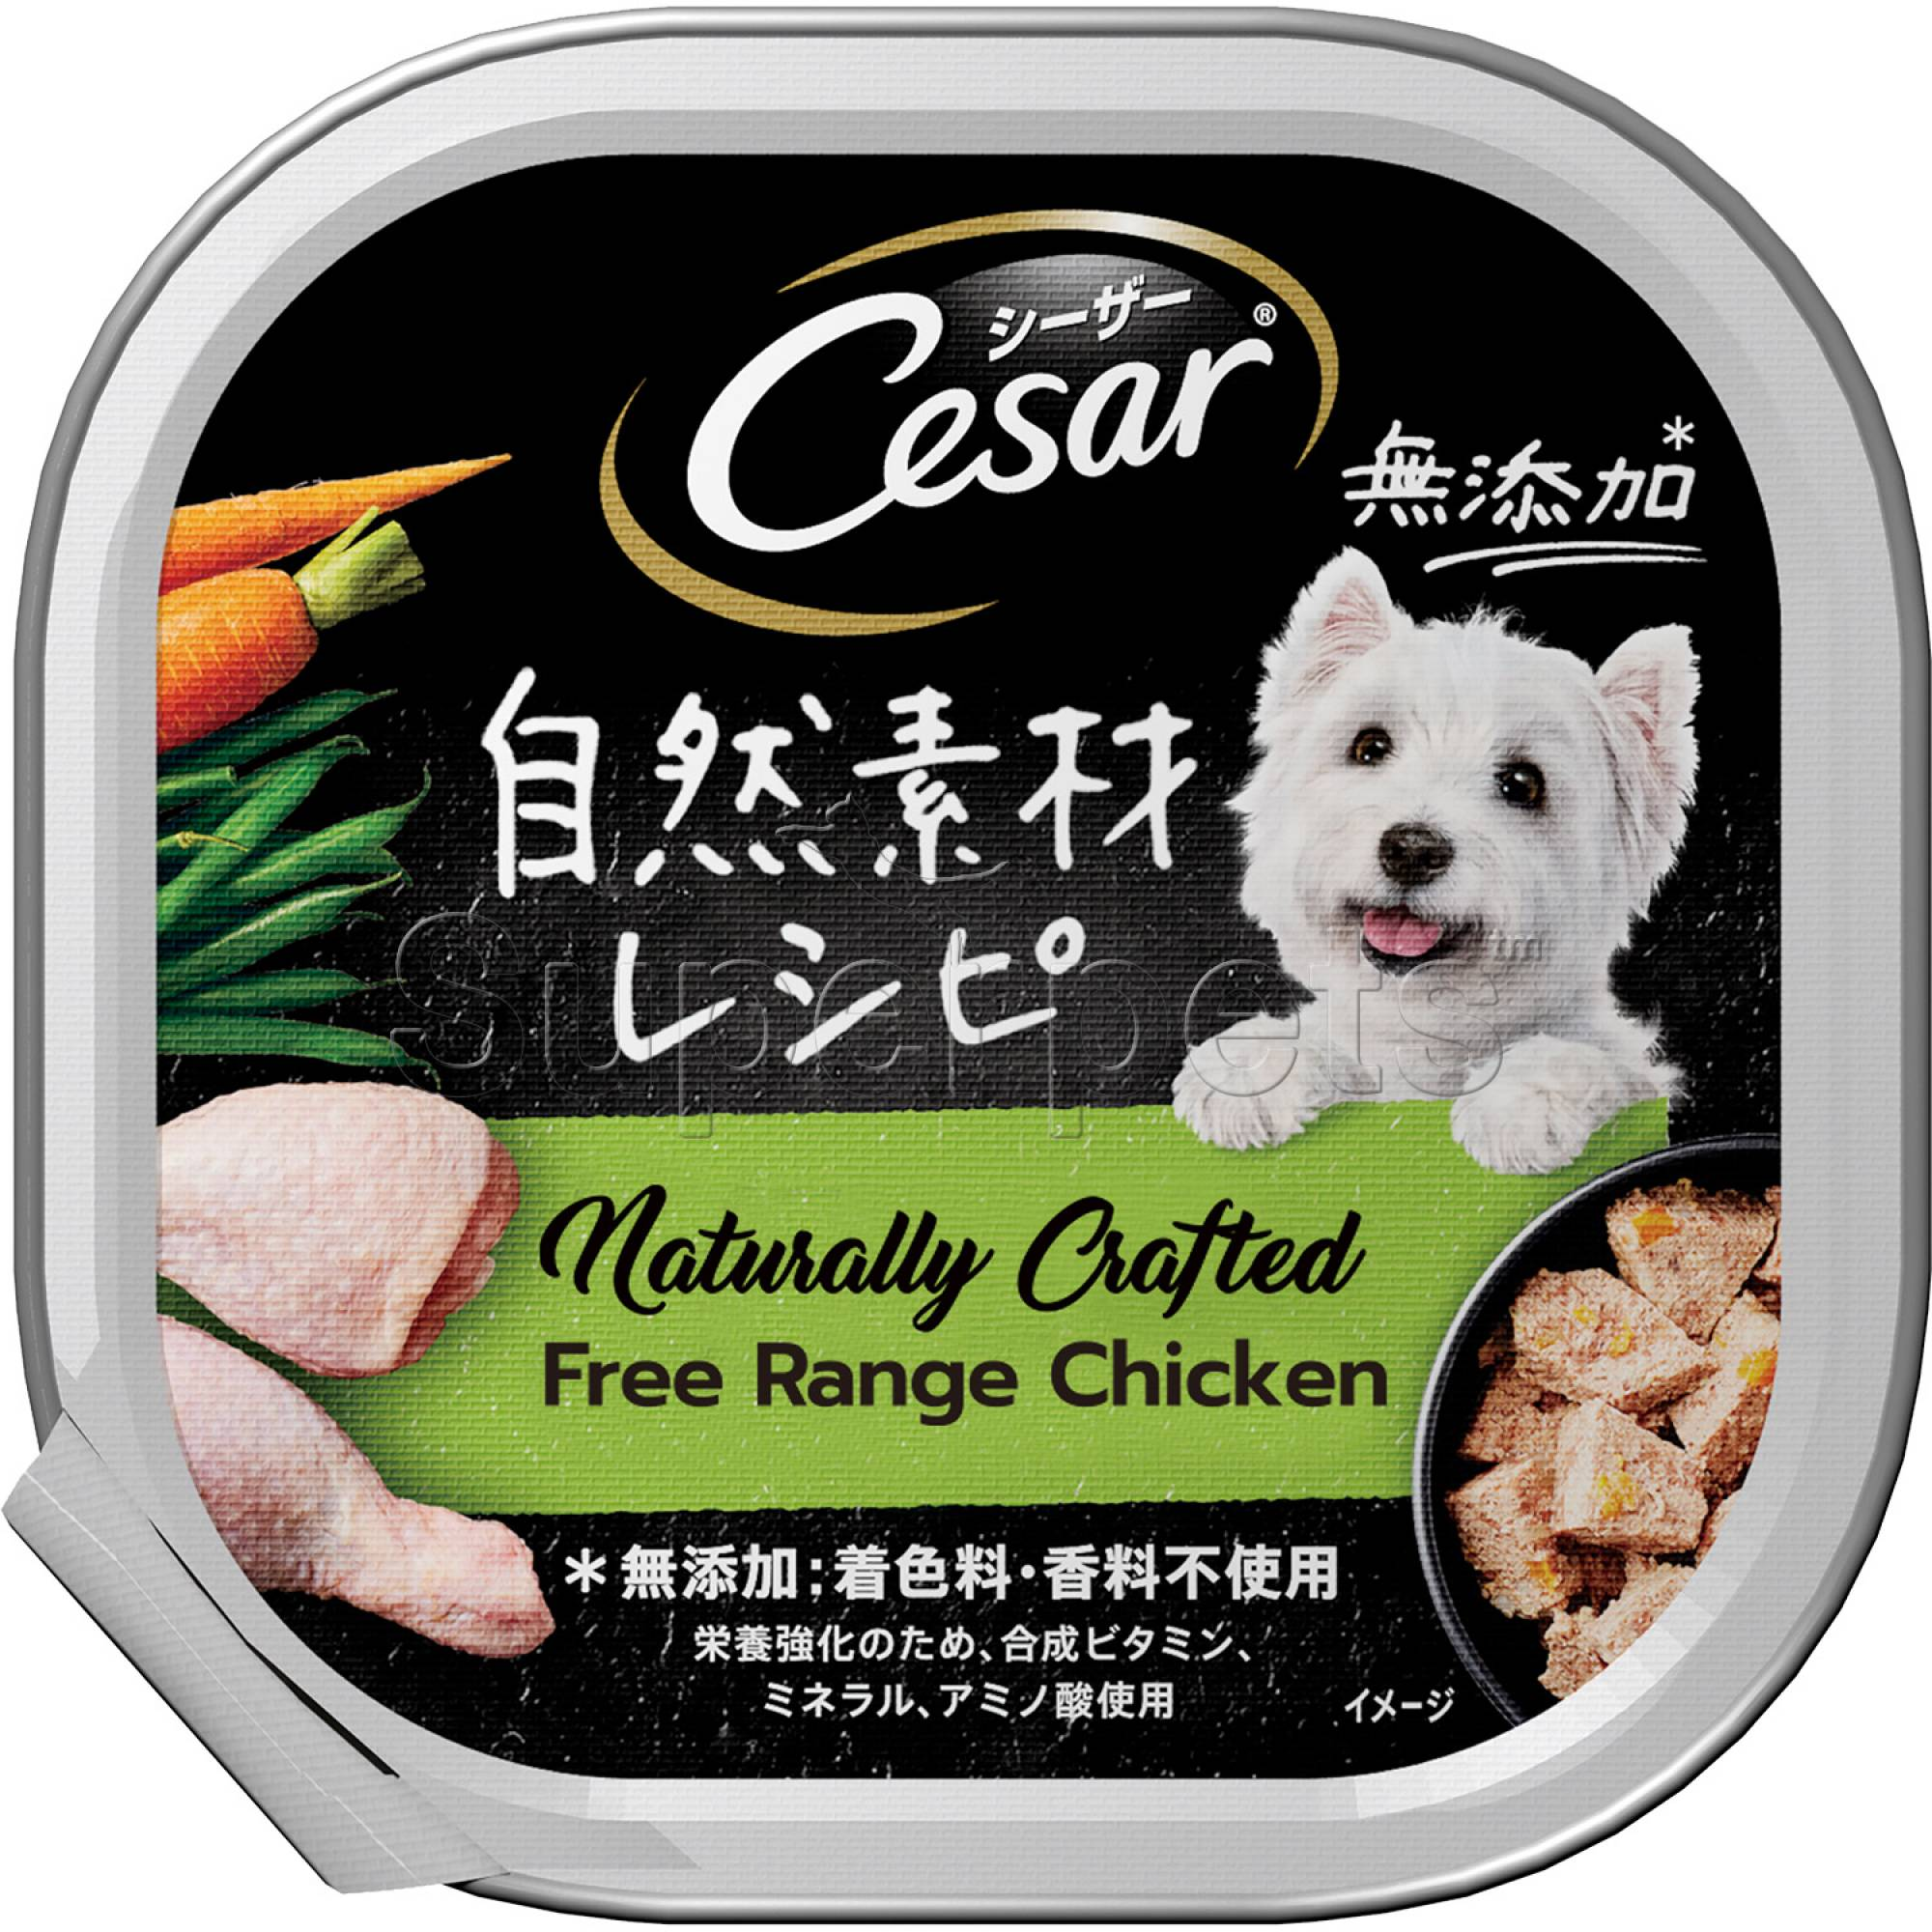 Cesar - Naturally Crafted Free Range Chicken 85g